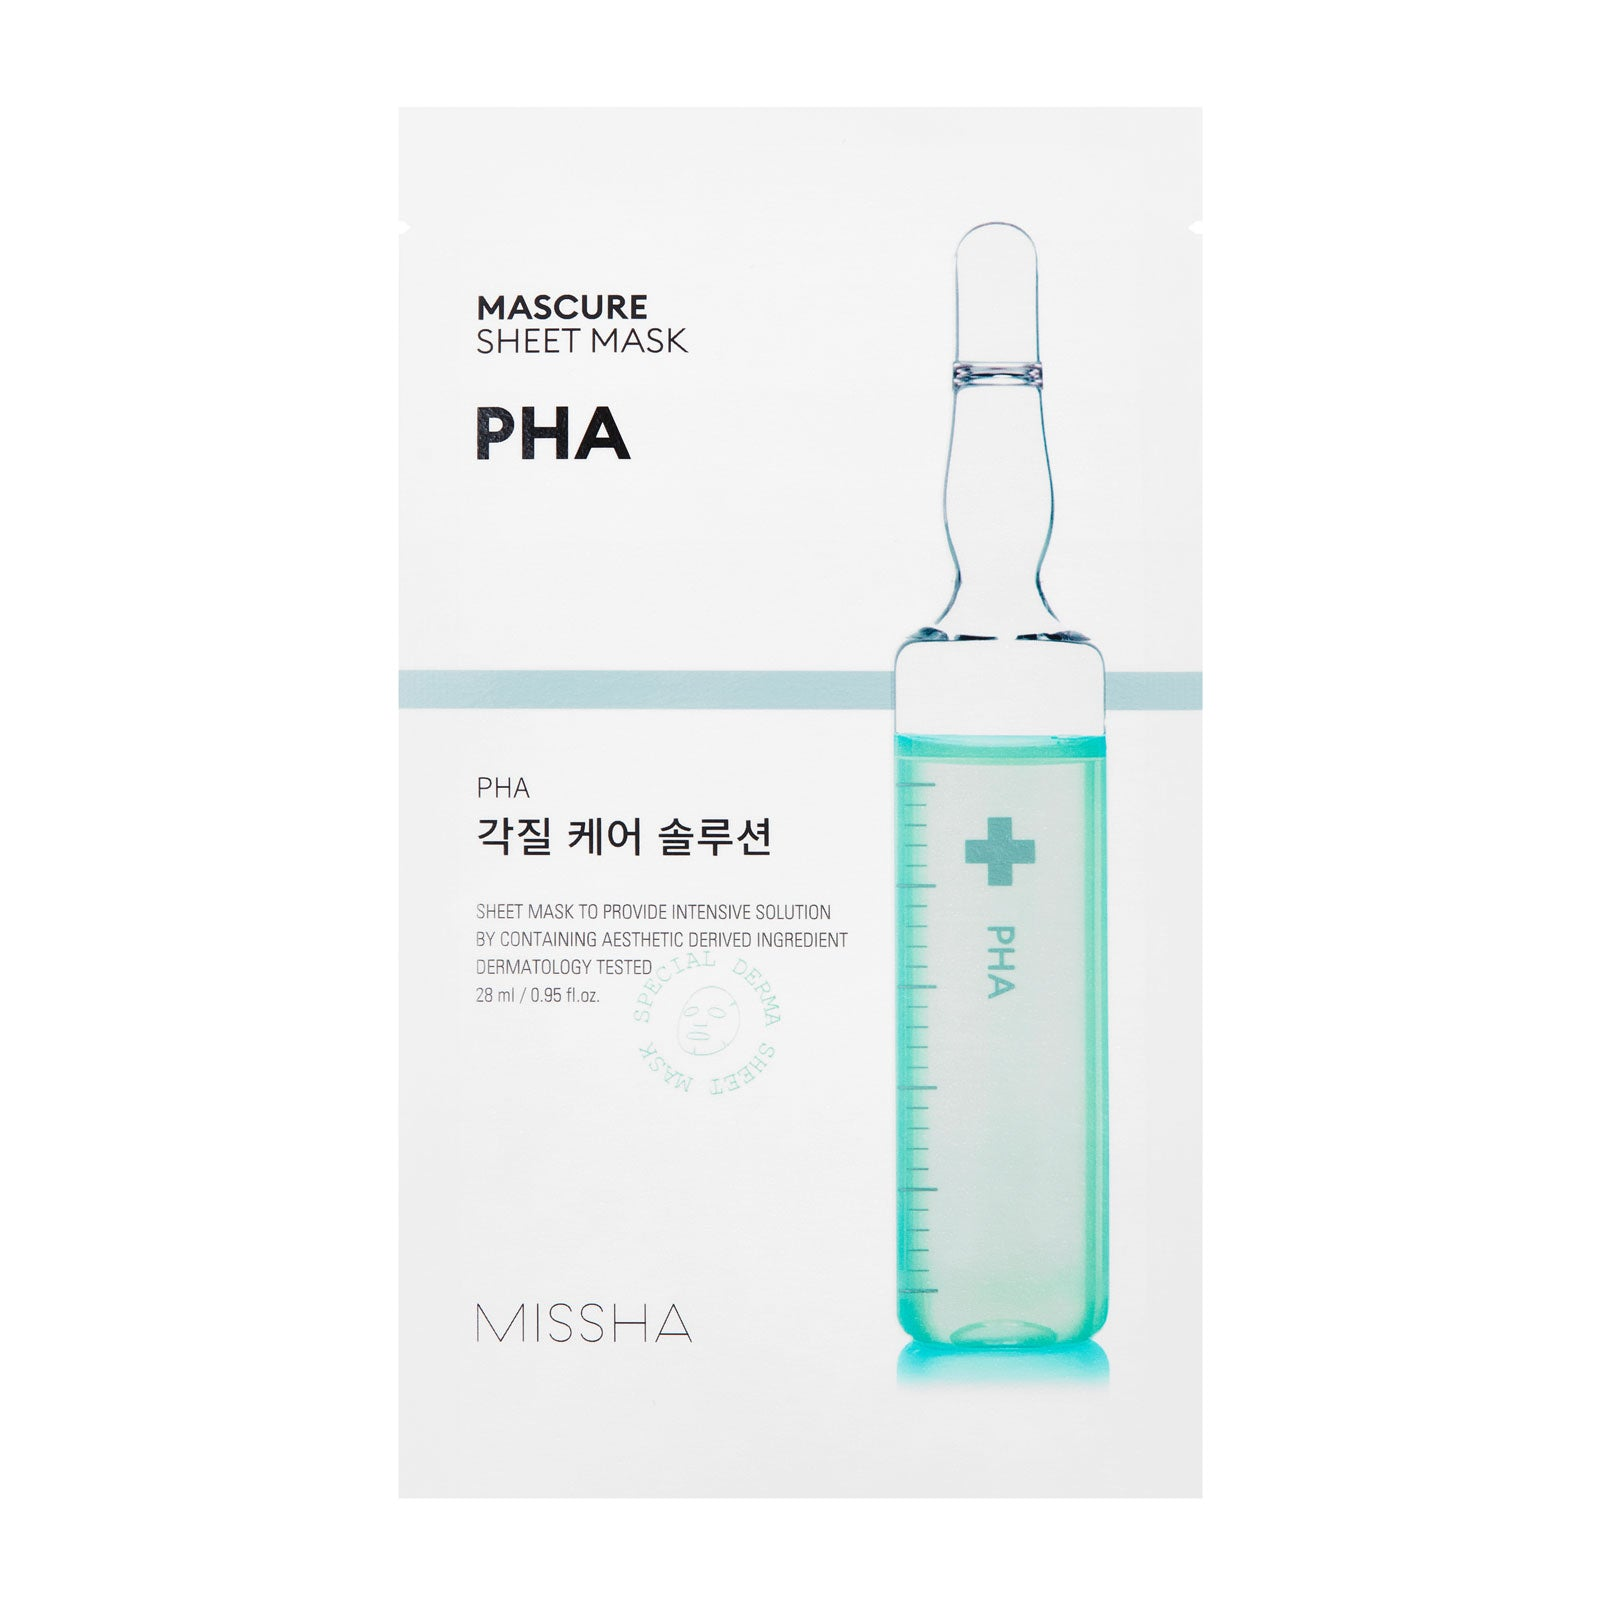 MISSHA Mascure PHA Peeling Sheet Mask 27ml